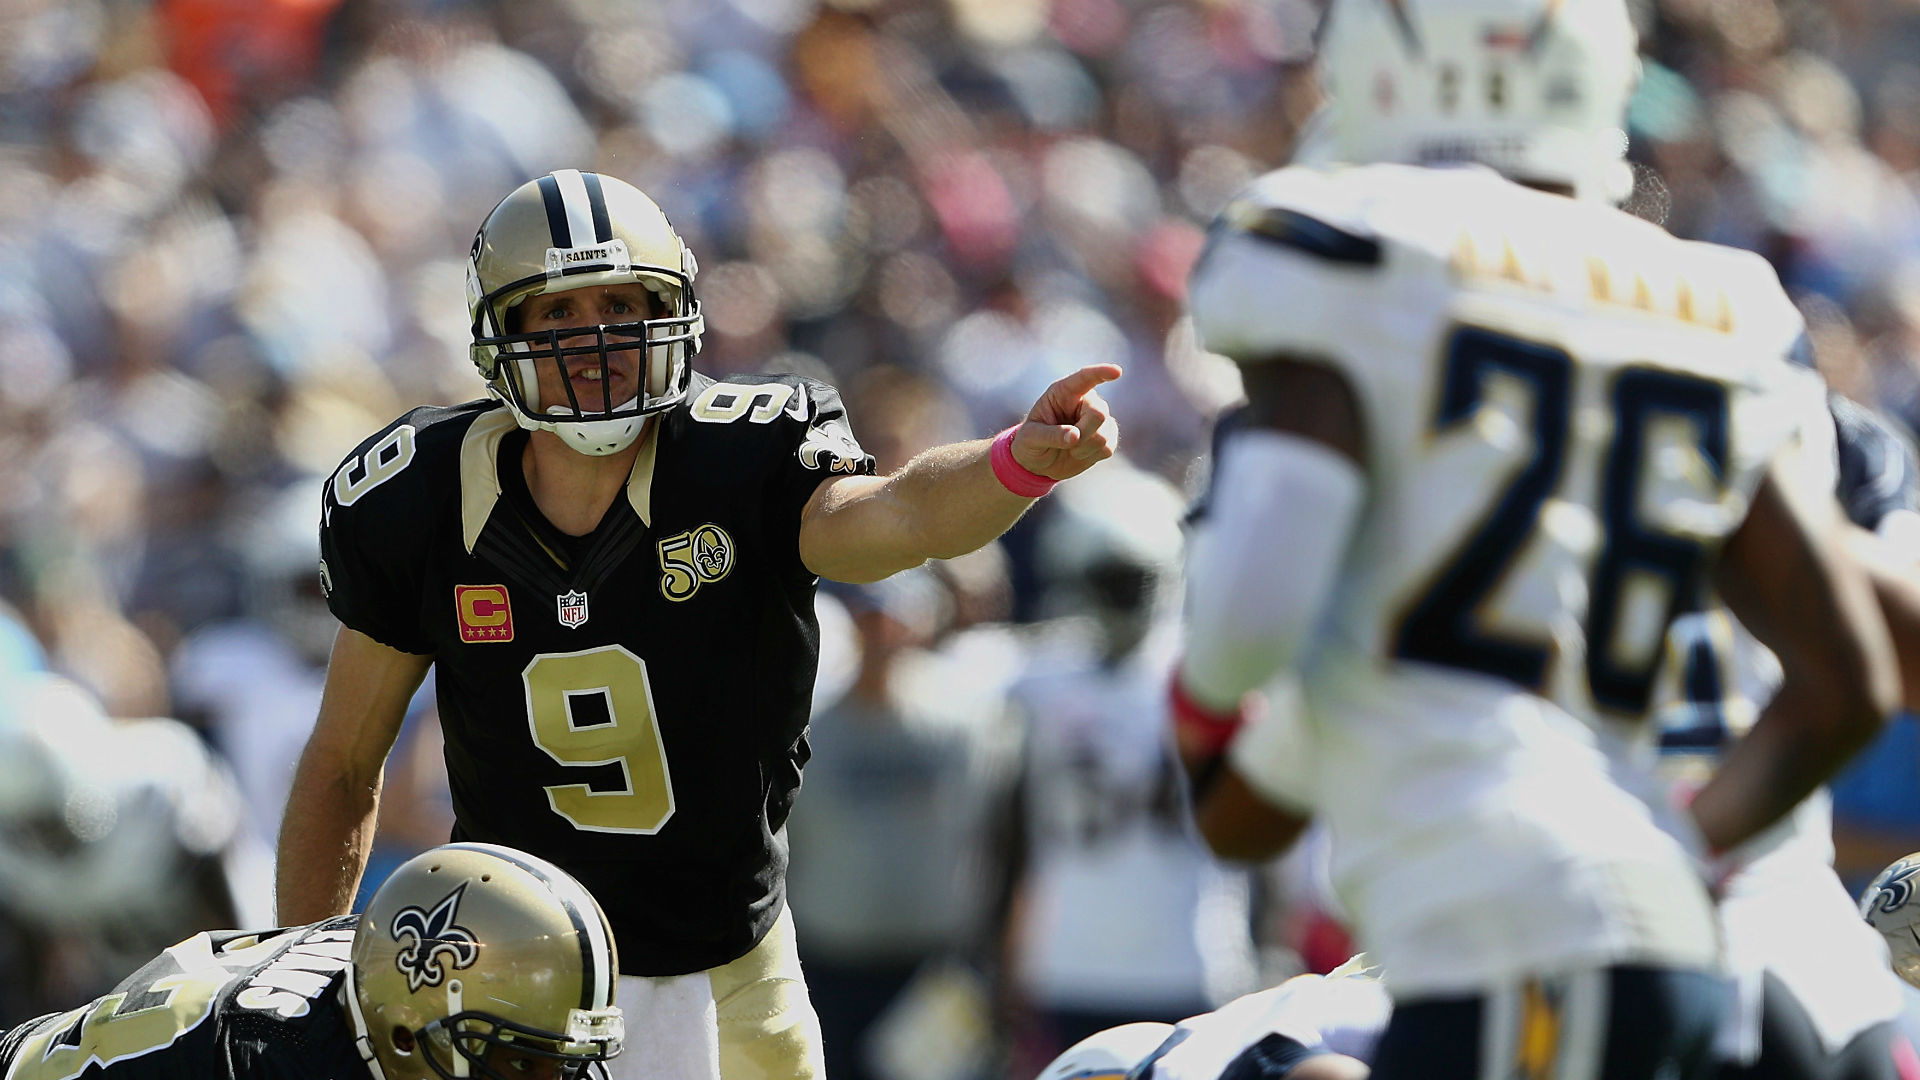 Drew Brees secures triumphant return to San Diego with eback